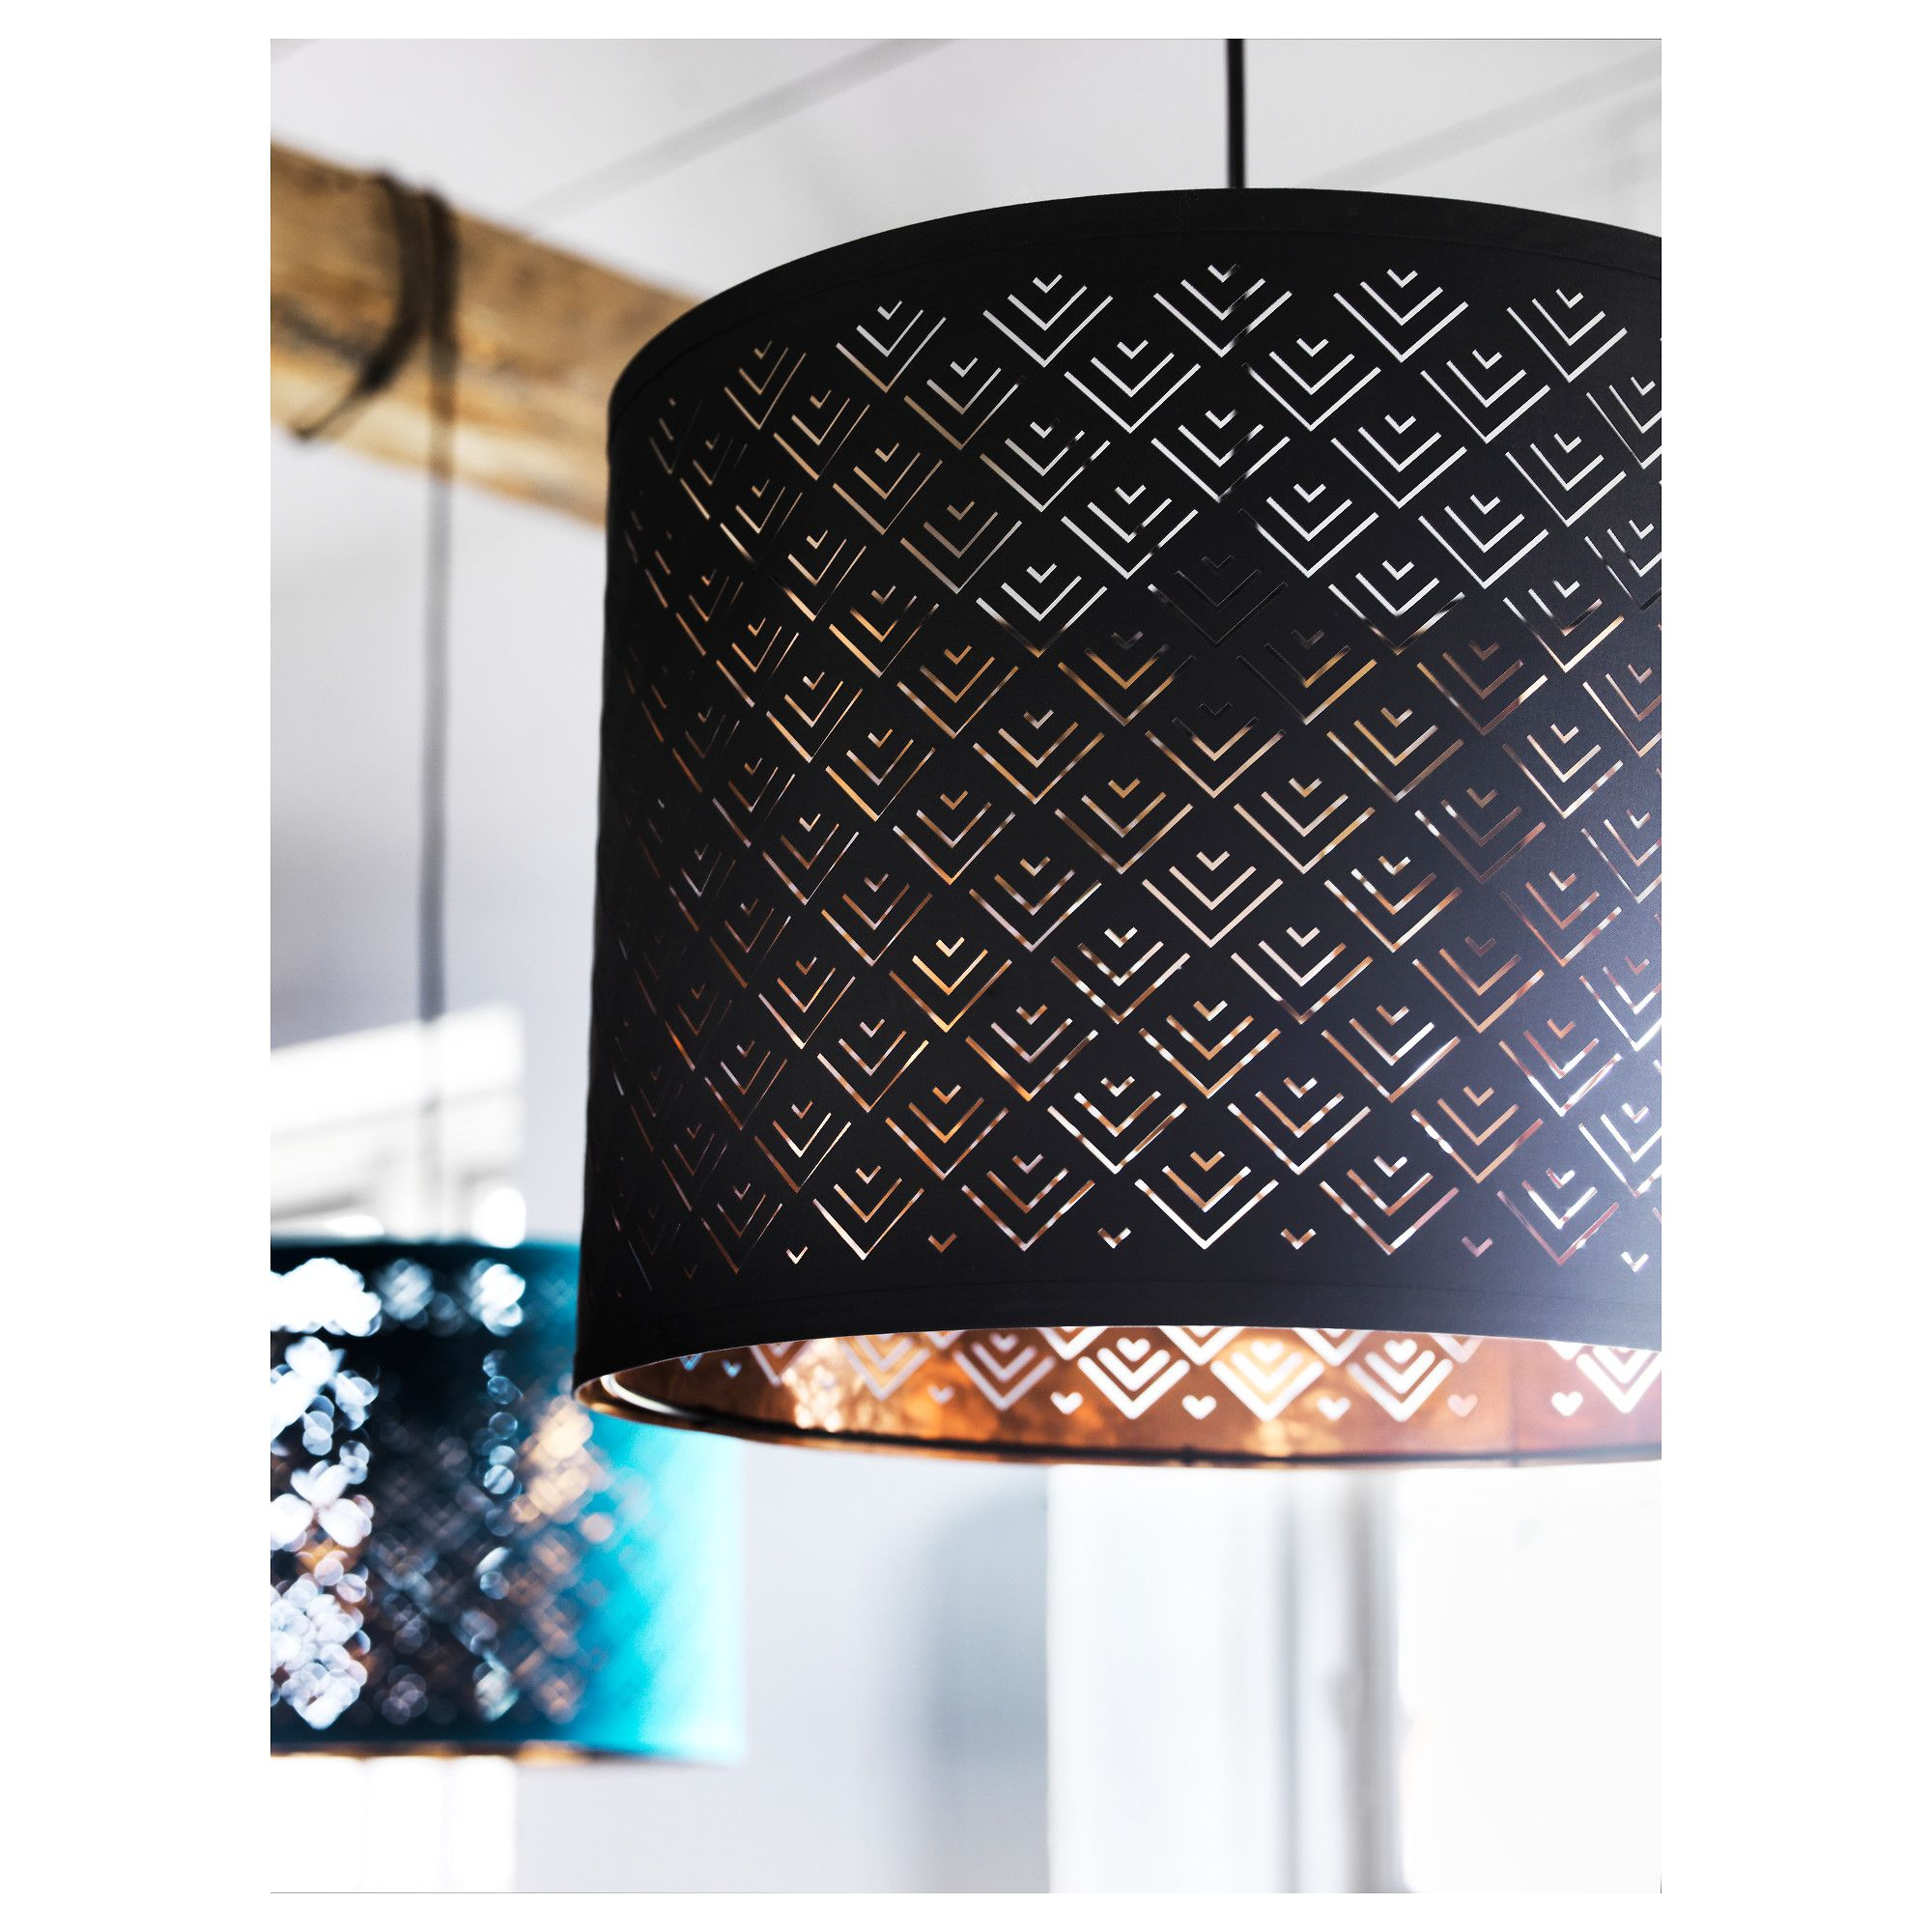 ikea nym lamp shade 37 cm create your own pendant or floor lamp by combining the lamp shade with your choice of cord